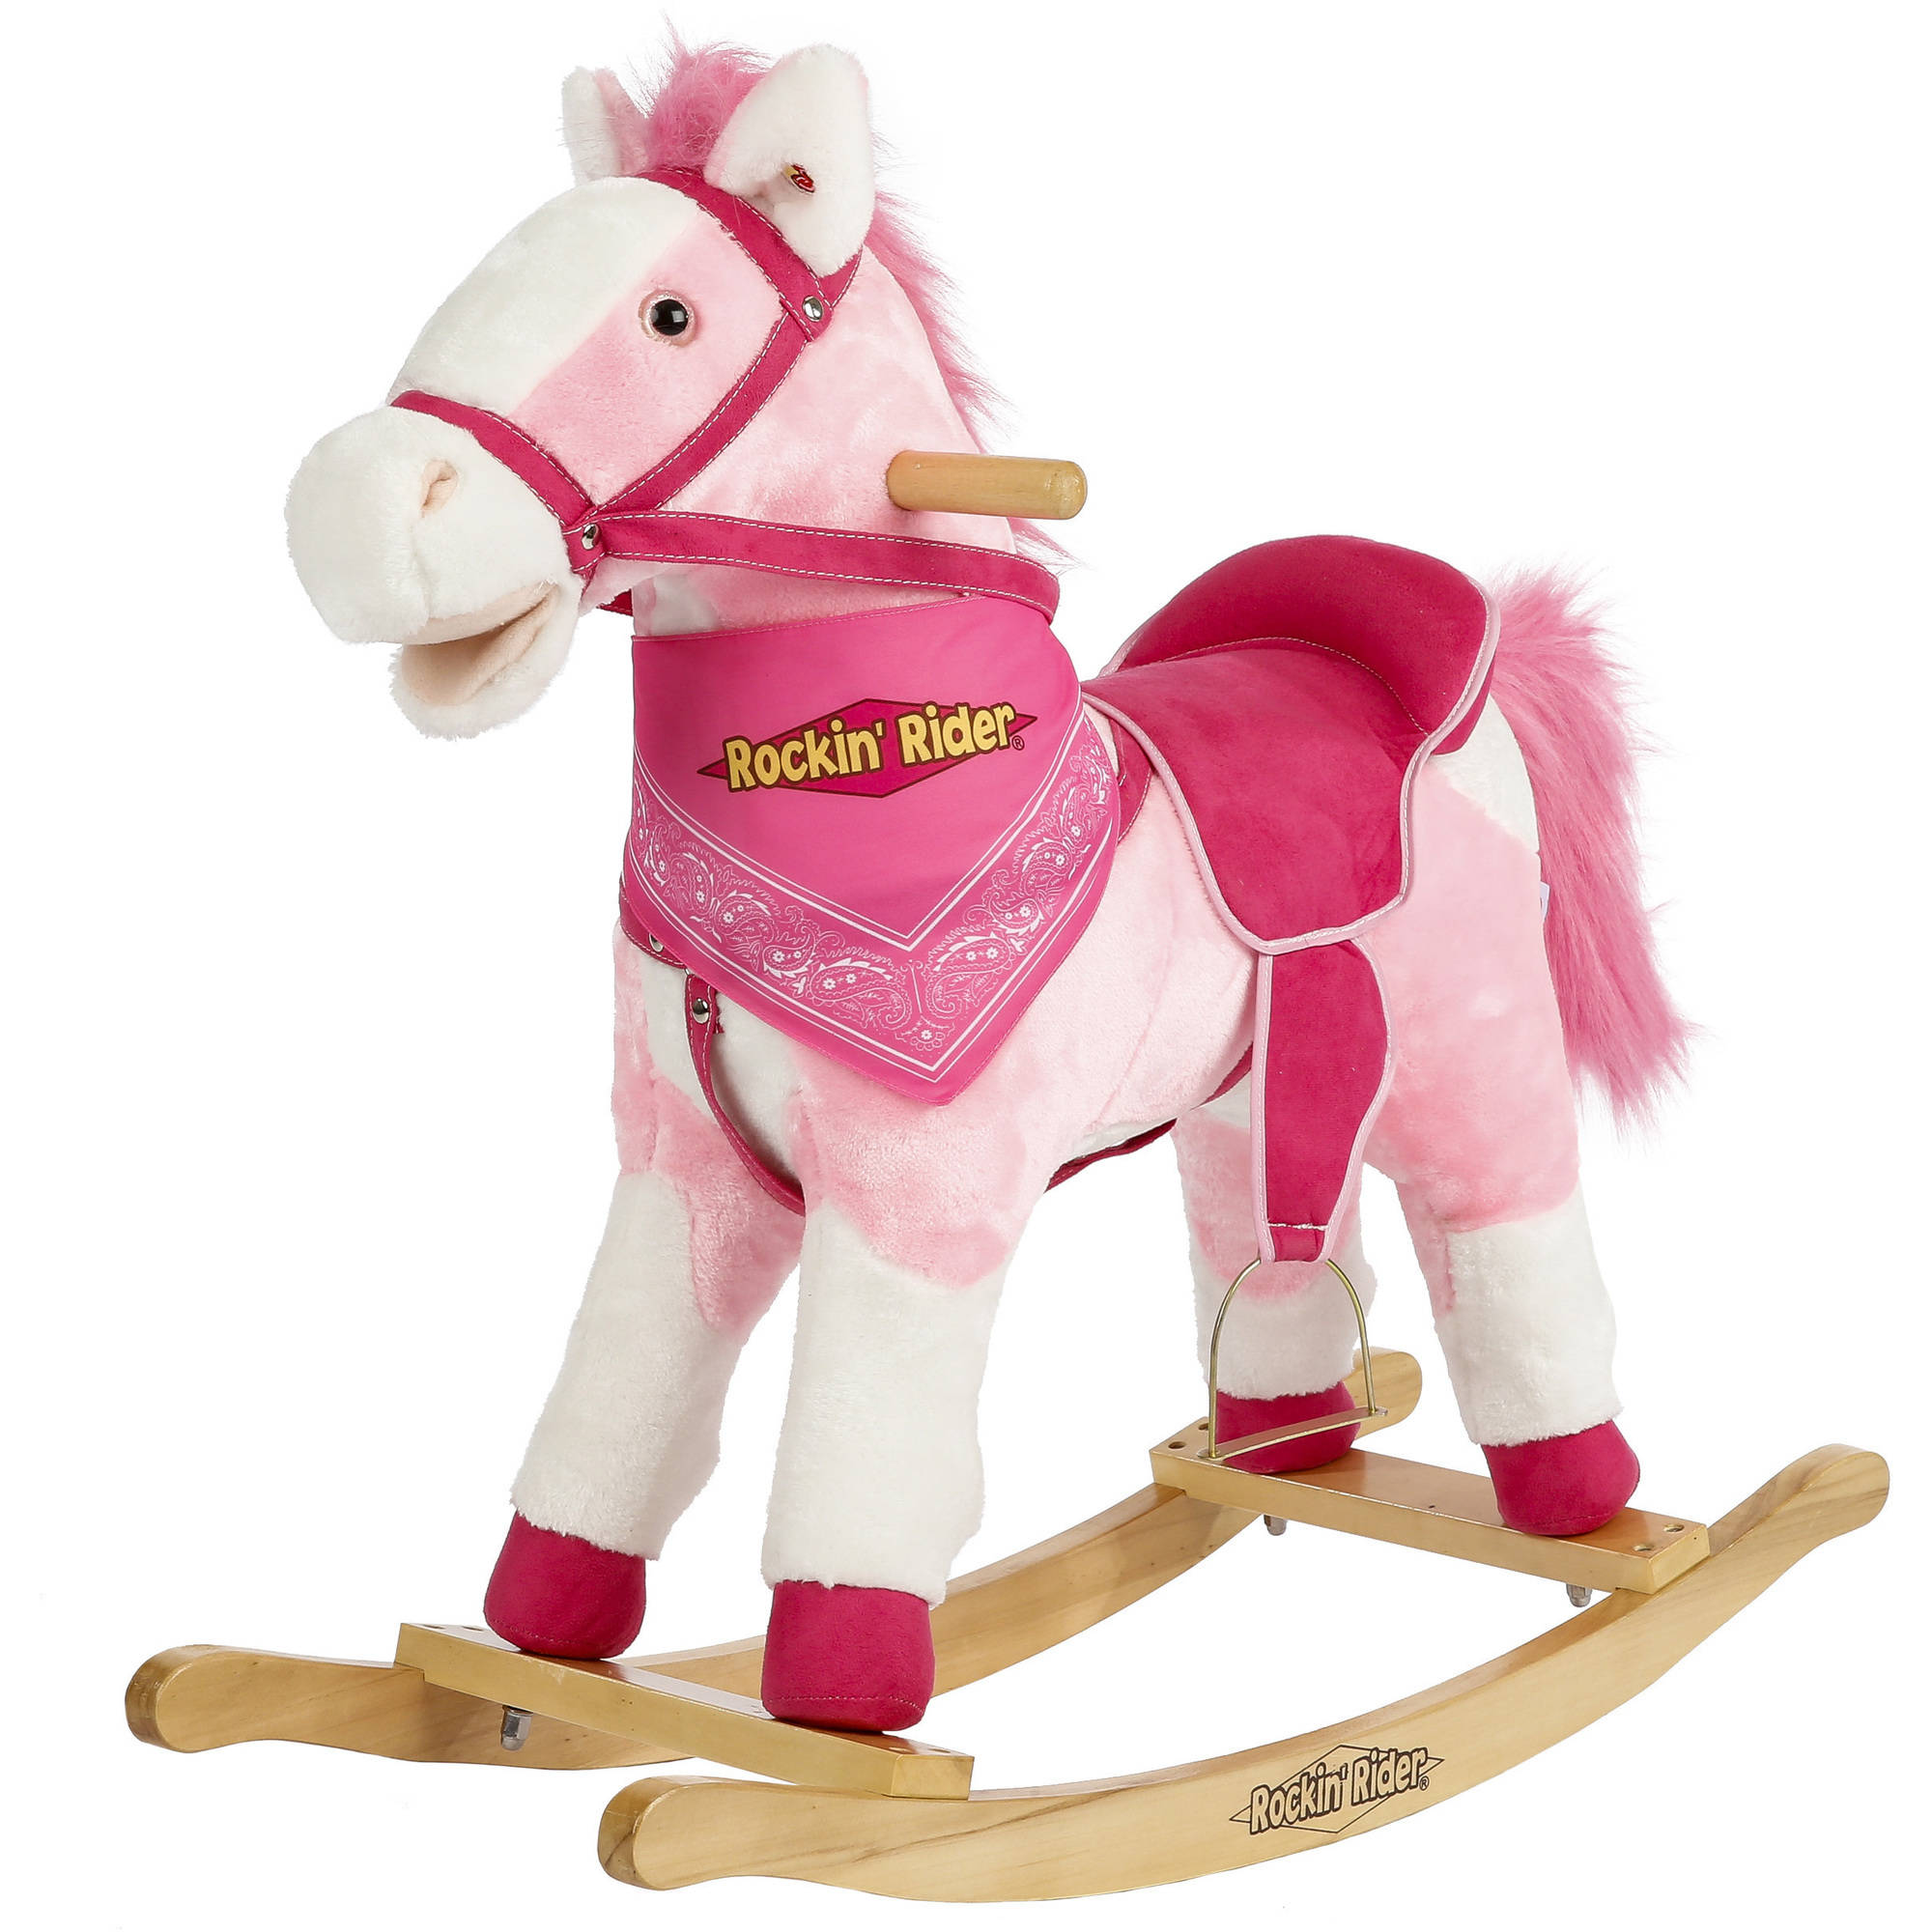 rockin' rider holly rocking horse  walmartcom -